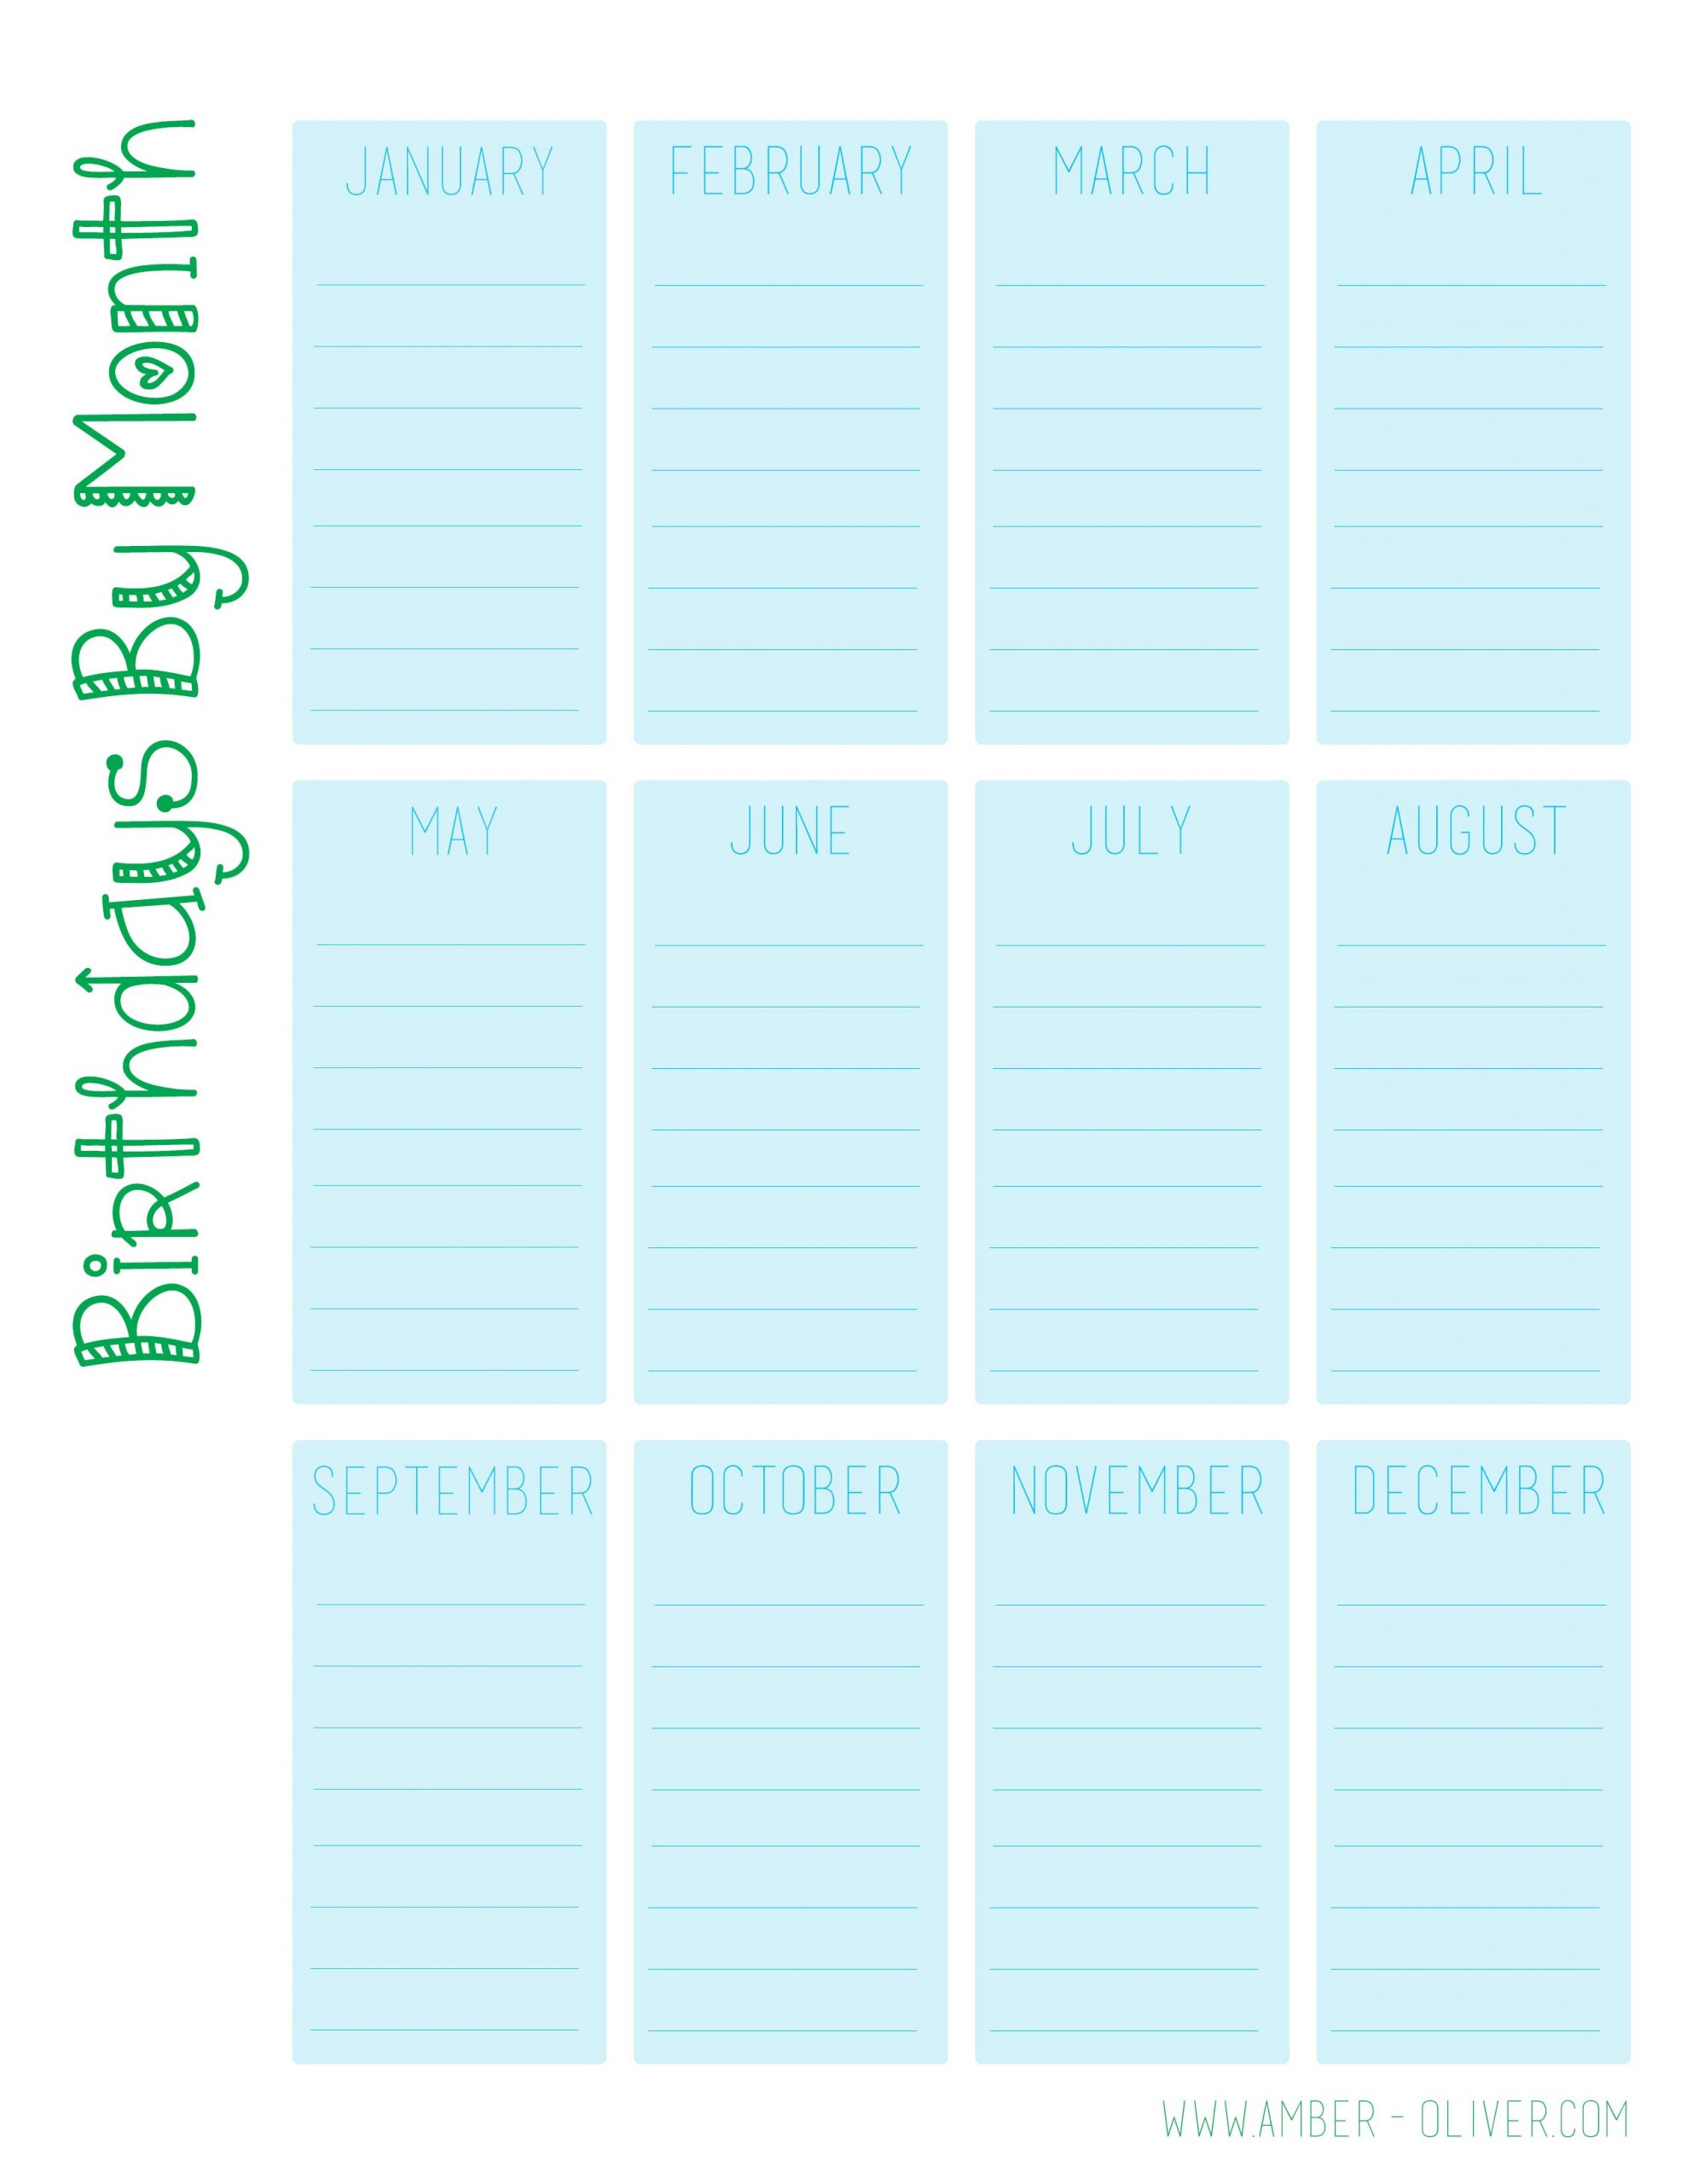 Birthday Calendar Printable   Amber Oliver Birthday Calendars That We Can Fill In